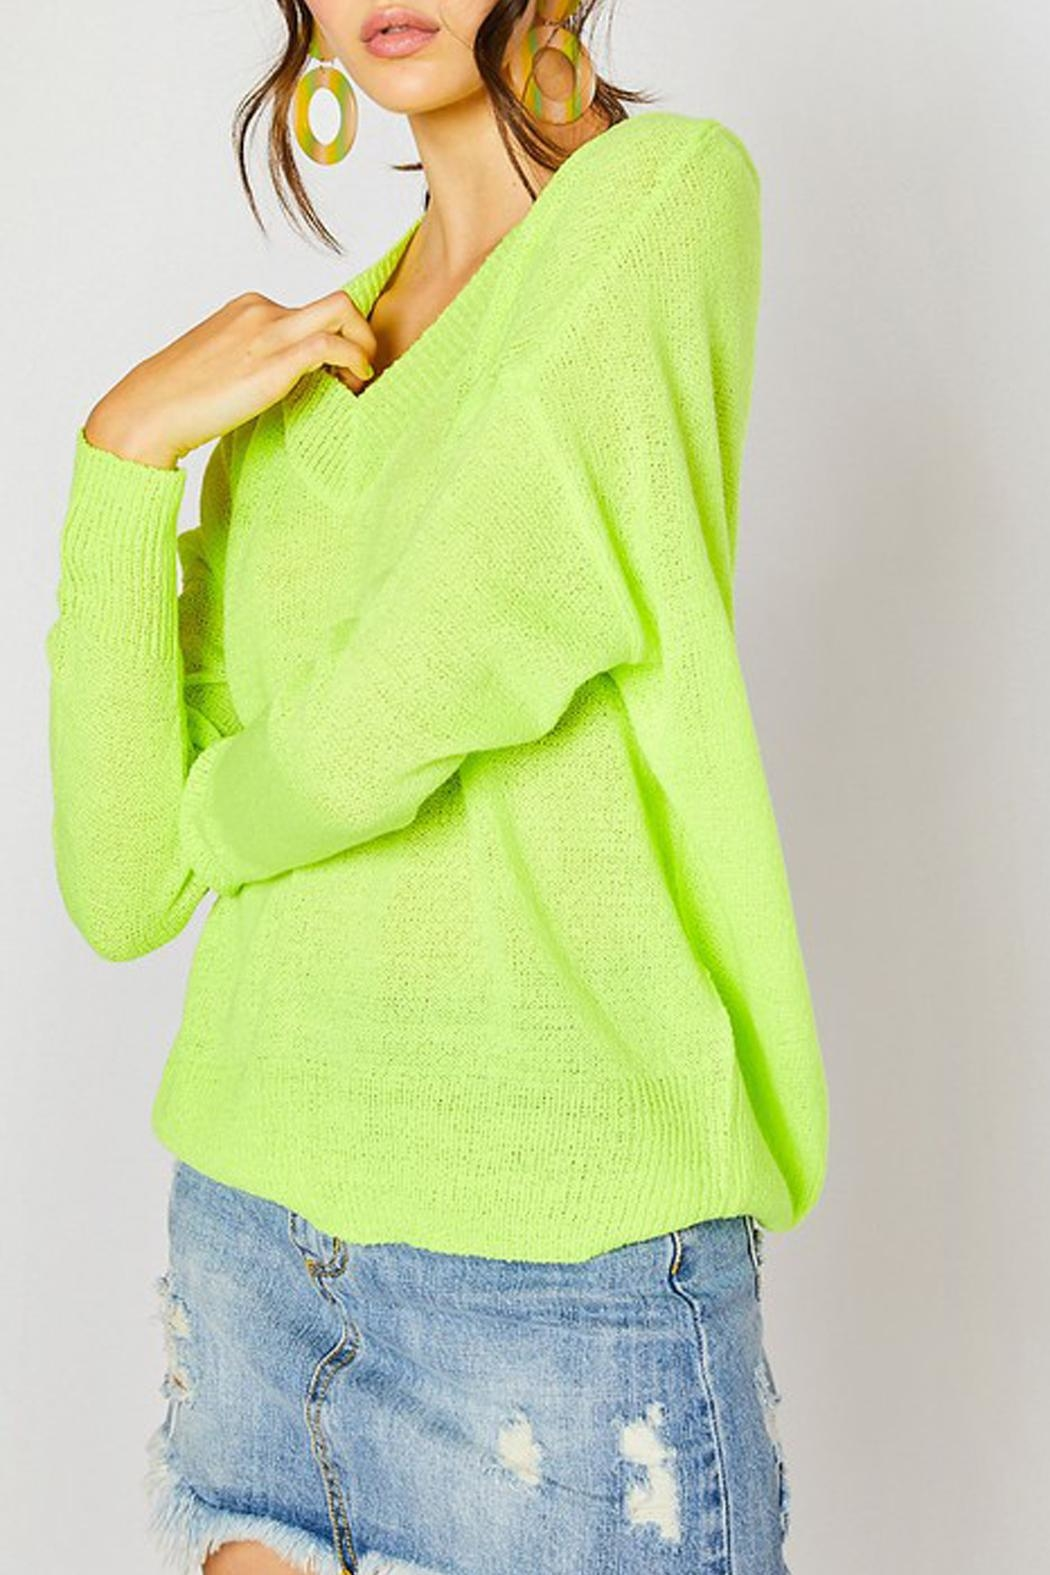 Wild Lilies Jewelry  Neon Yellow Sweater - Main Image